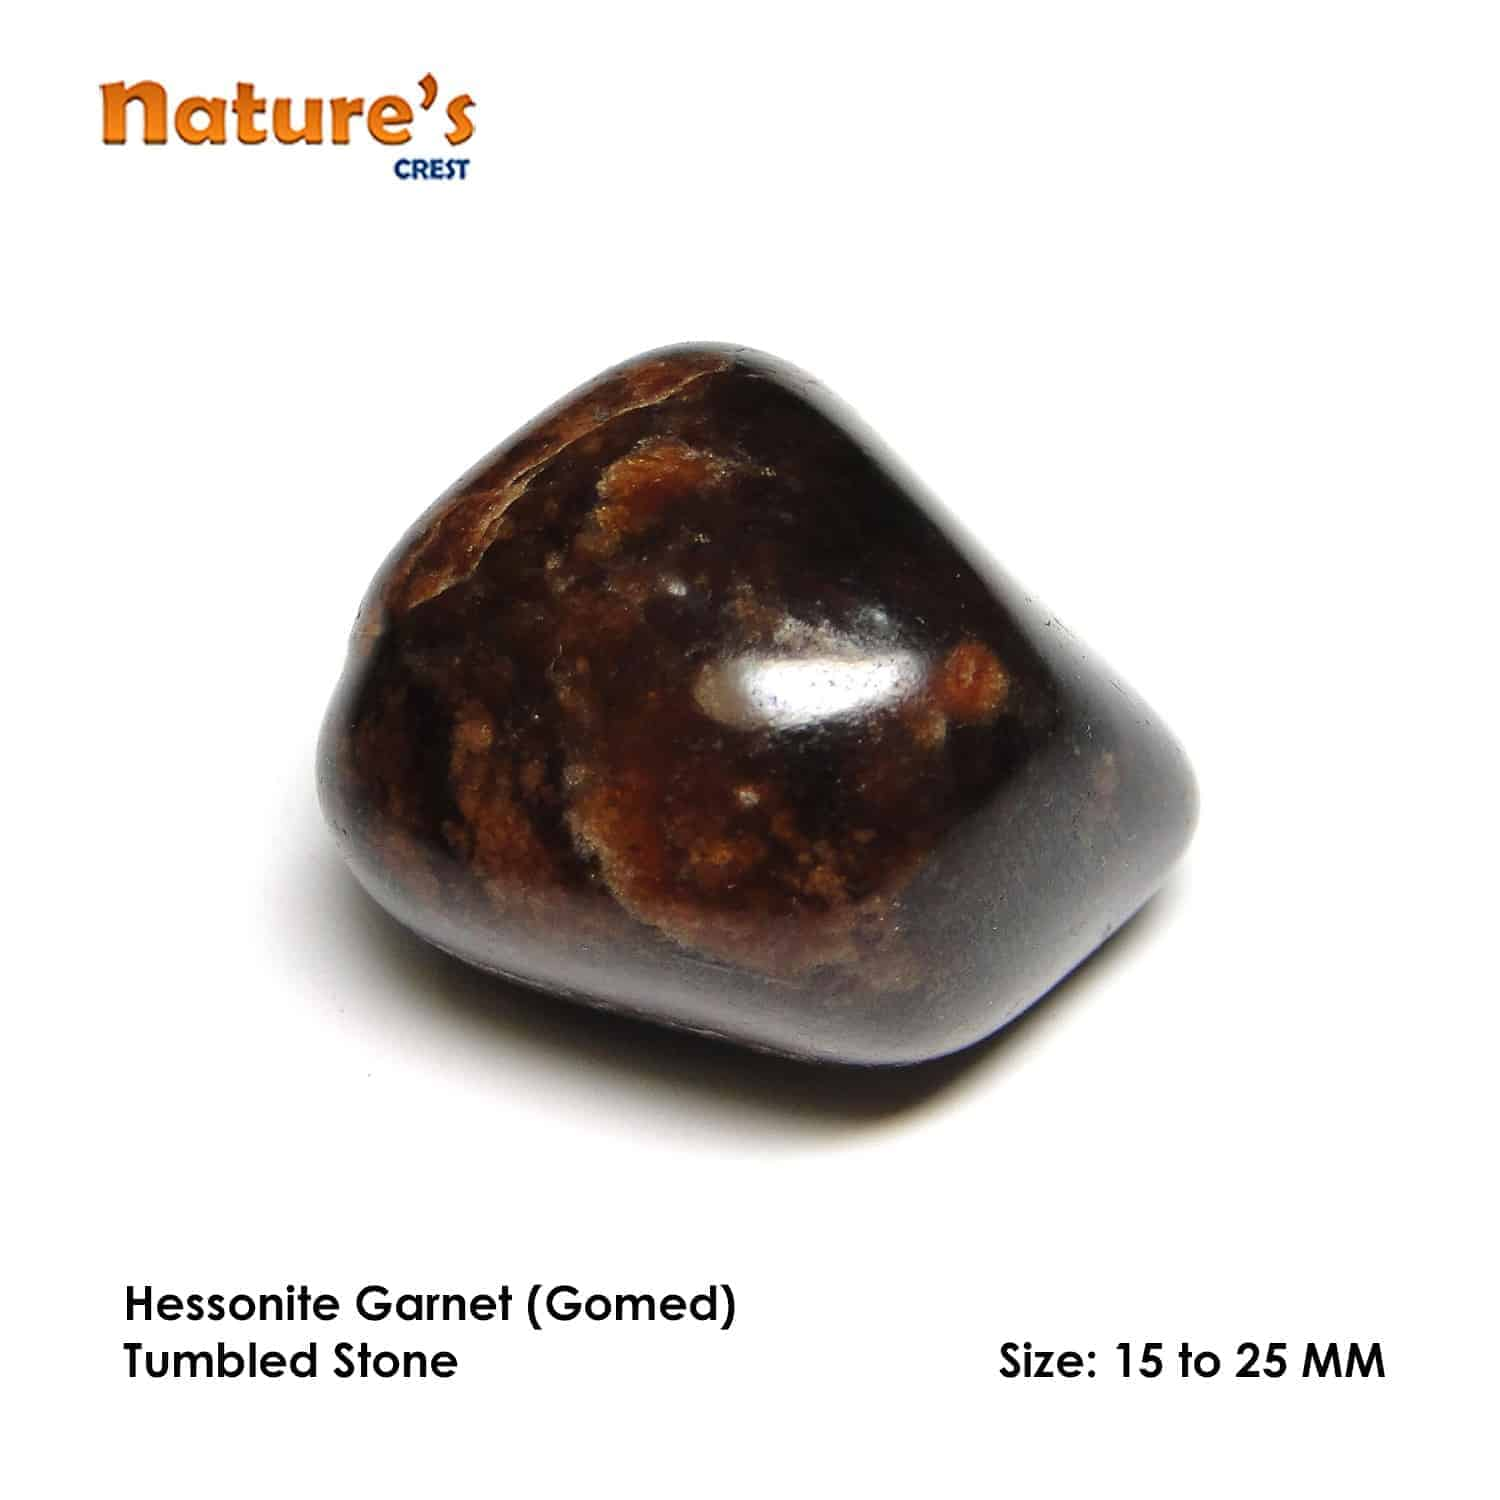 Hessonite Garnet (Gomed) Tumbled Pebble Stones Nature's Crest TS008 ₹ 249.00